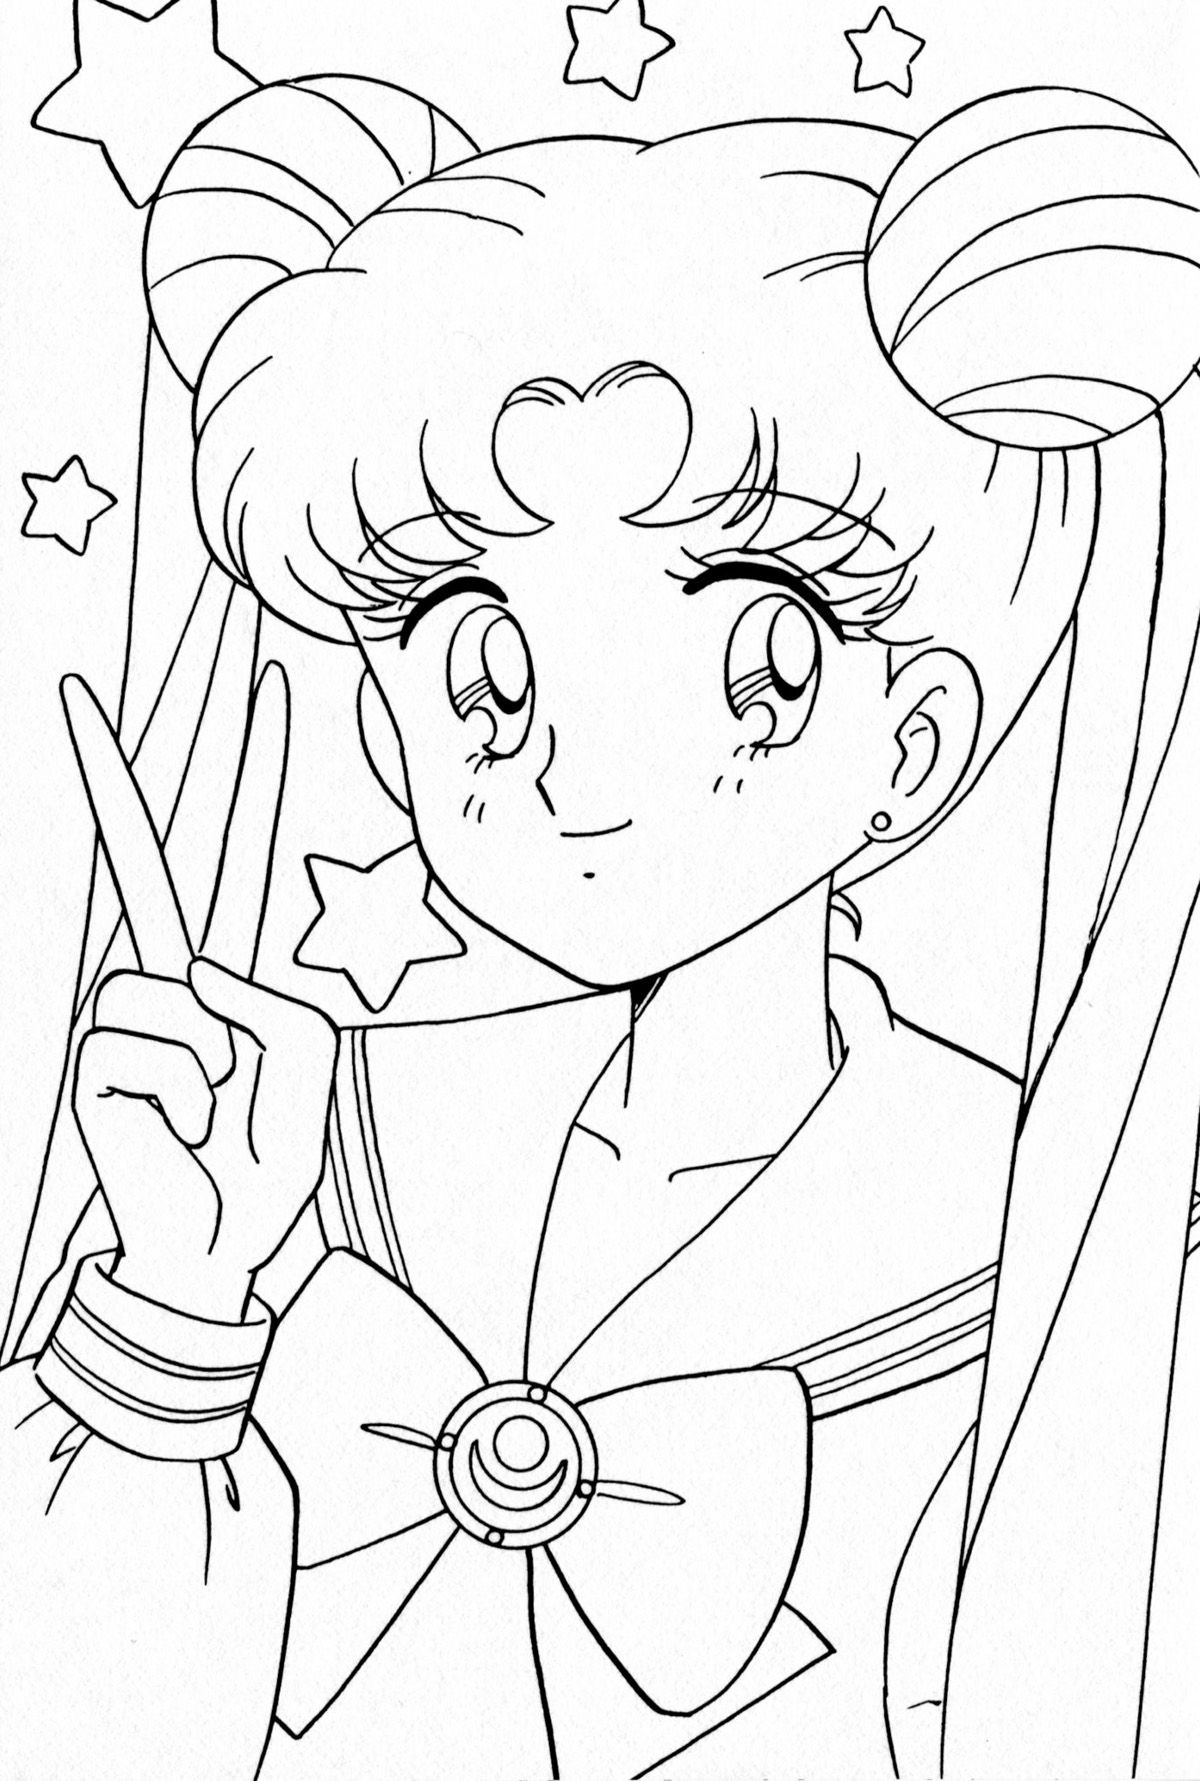 Sailor moon coloring pages | Sailor moon coloring pages, Moon ... | 1781x1200